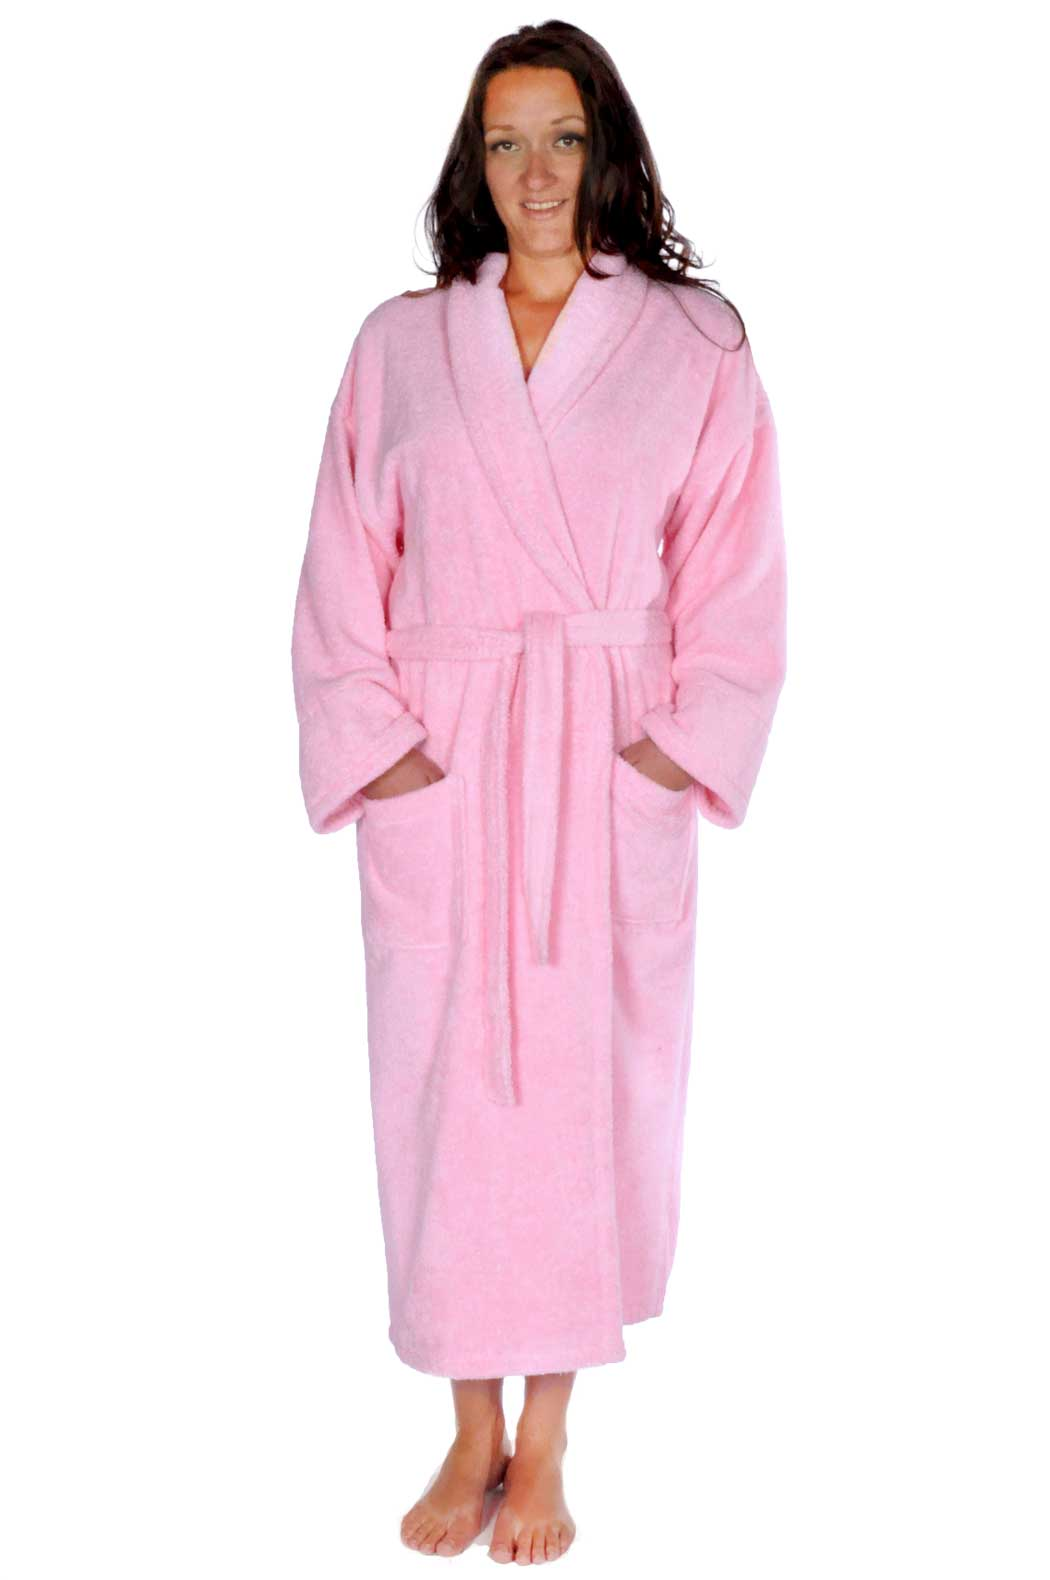 Bath Robes For Women Bing Images